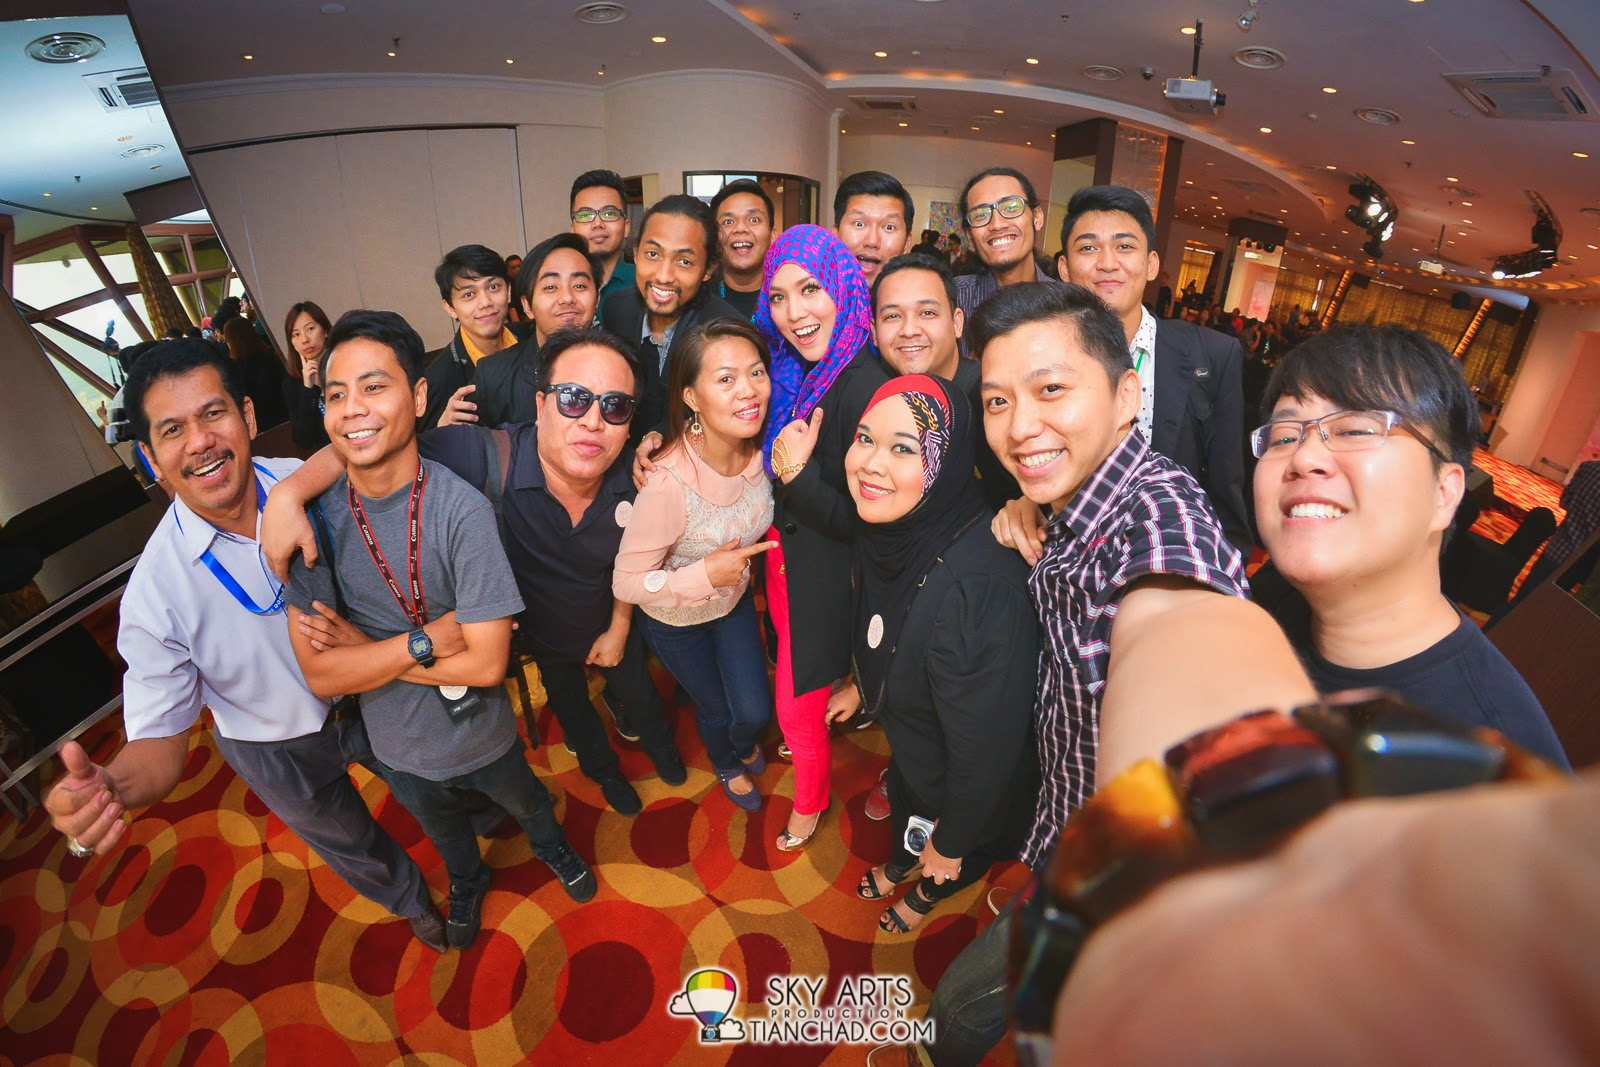 A bigger #TCSelfie with Shila Amzah and more media friends!! Thanks everybody!